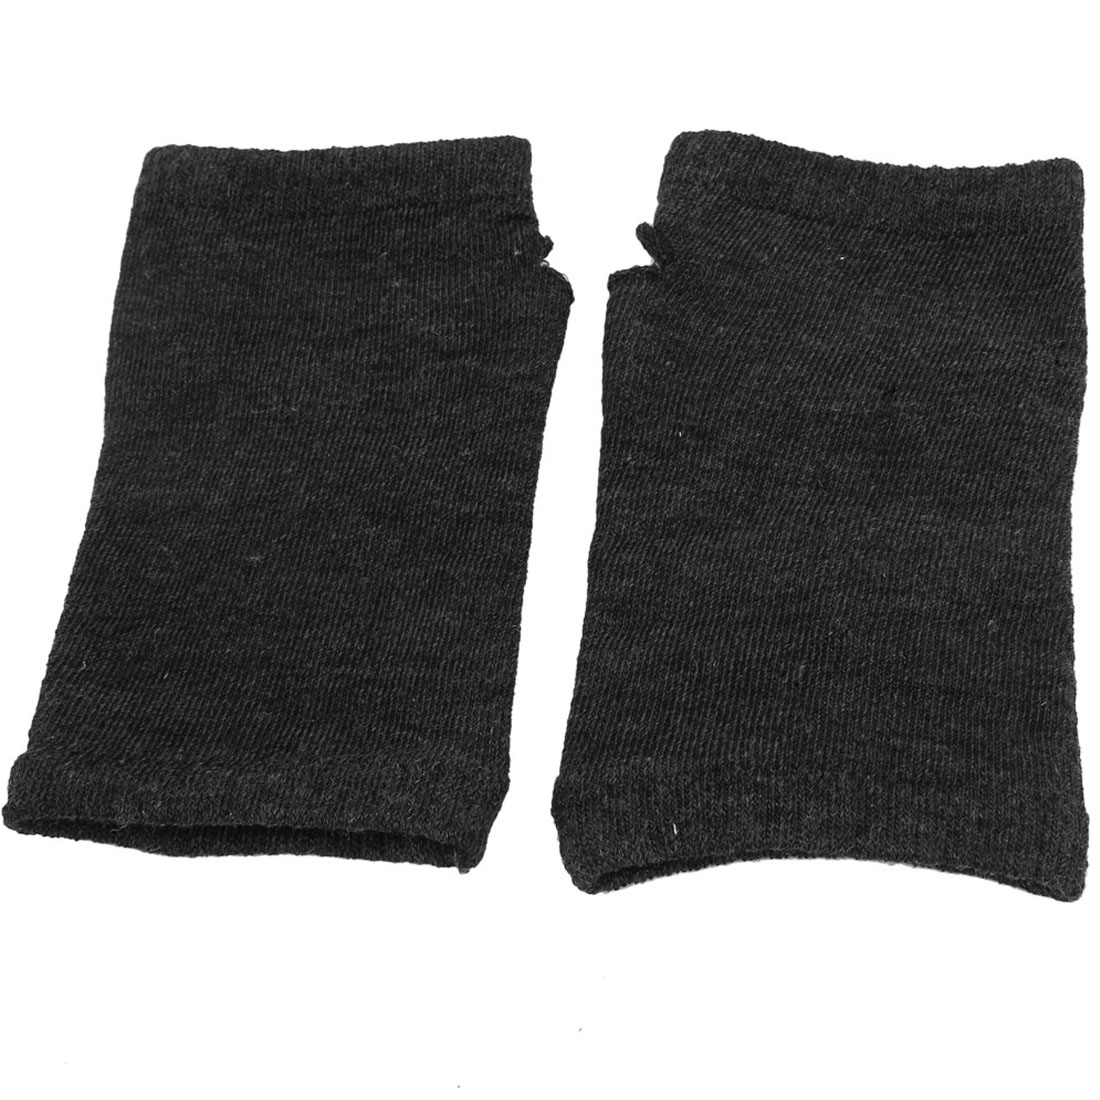 Unisex Cotton Blends Stretchy Fingerless Warm Soft Gloves Dark Gray Pair